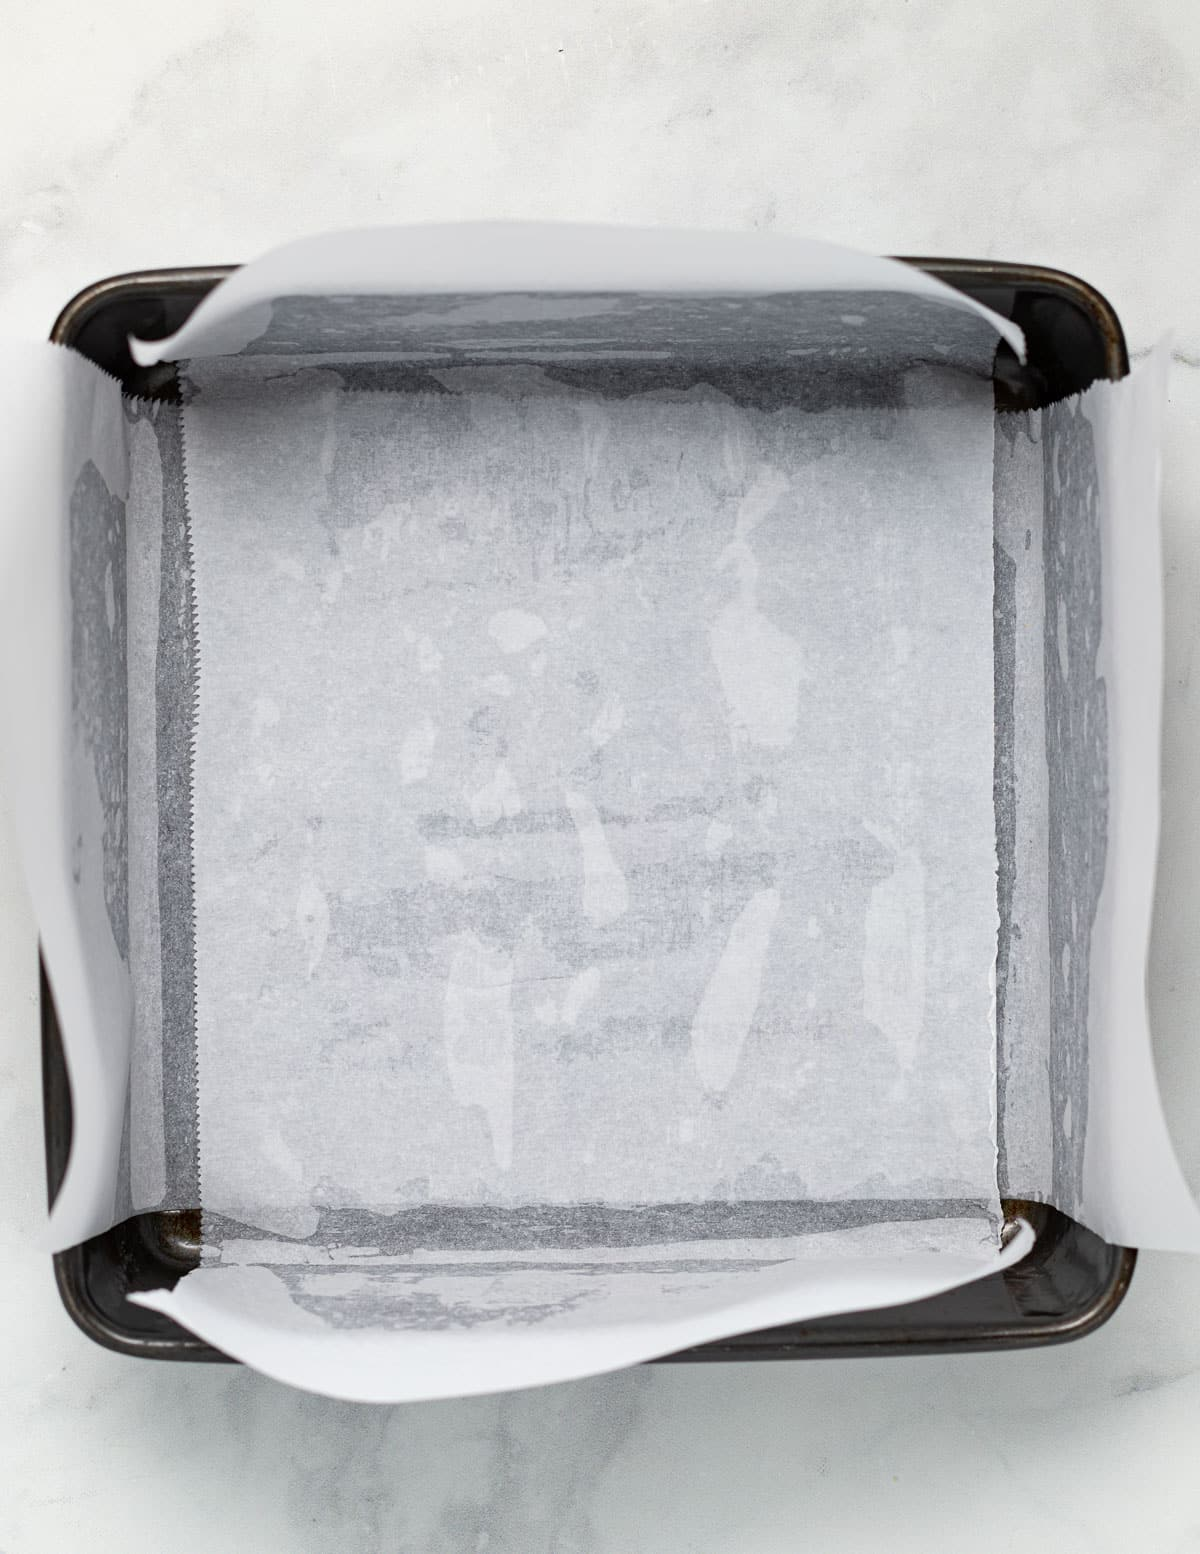 a lined 8 x 8 inch baking pan